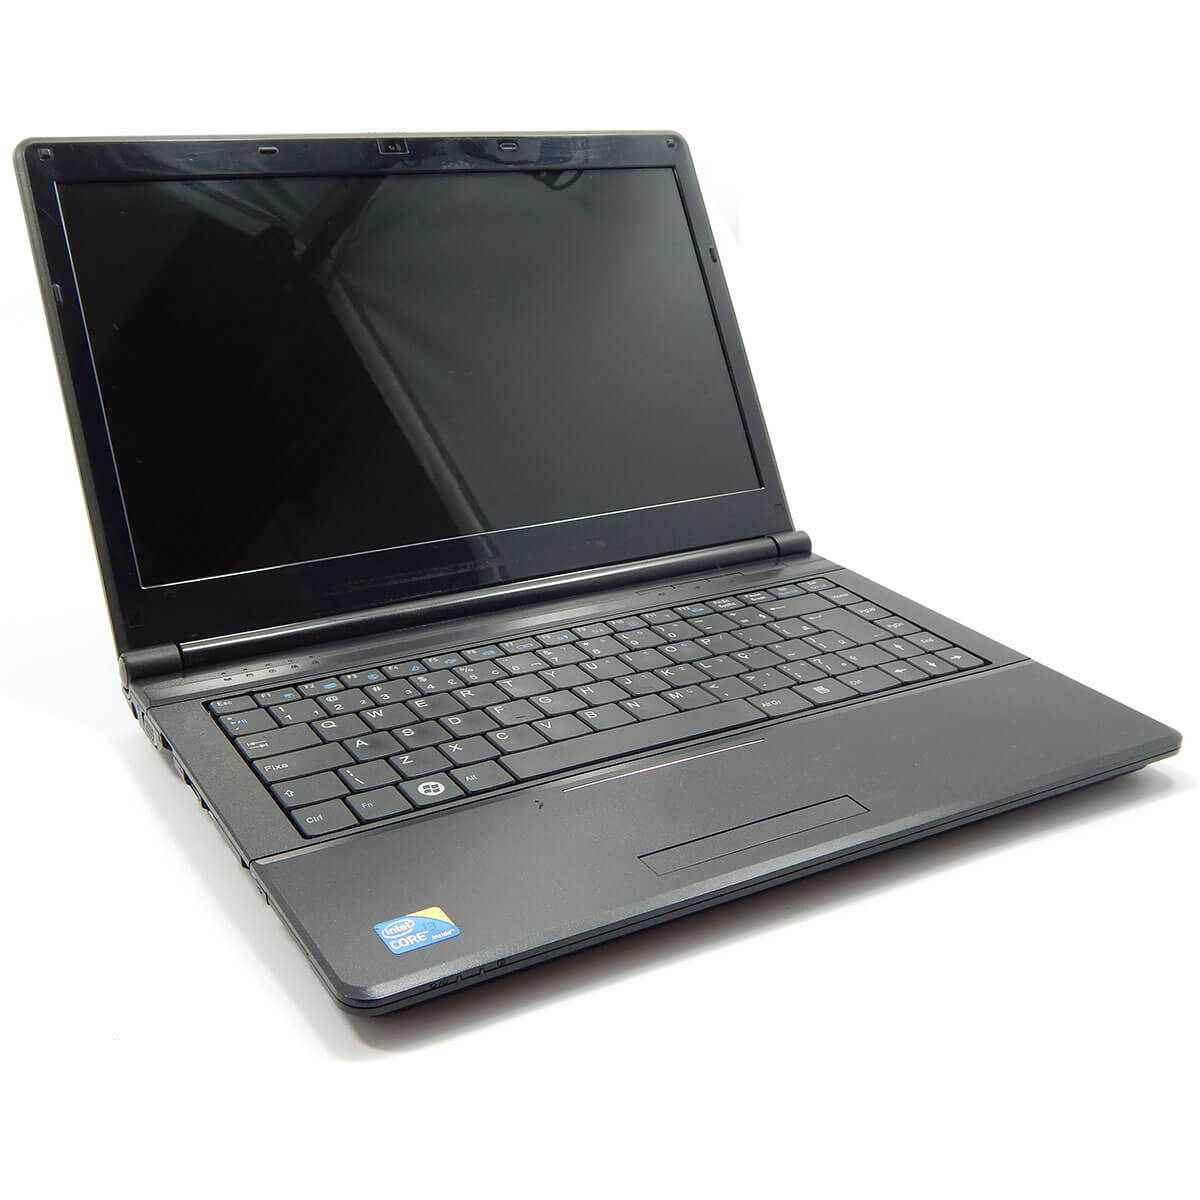 NOTEBOOK POSITIVO SIM I3-M380 4Gb 500Gb HD - Seminovo